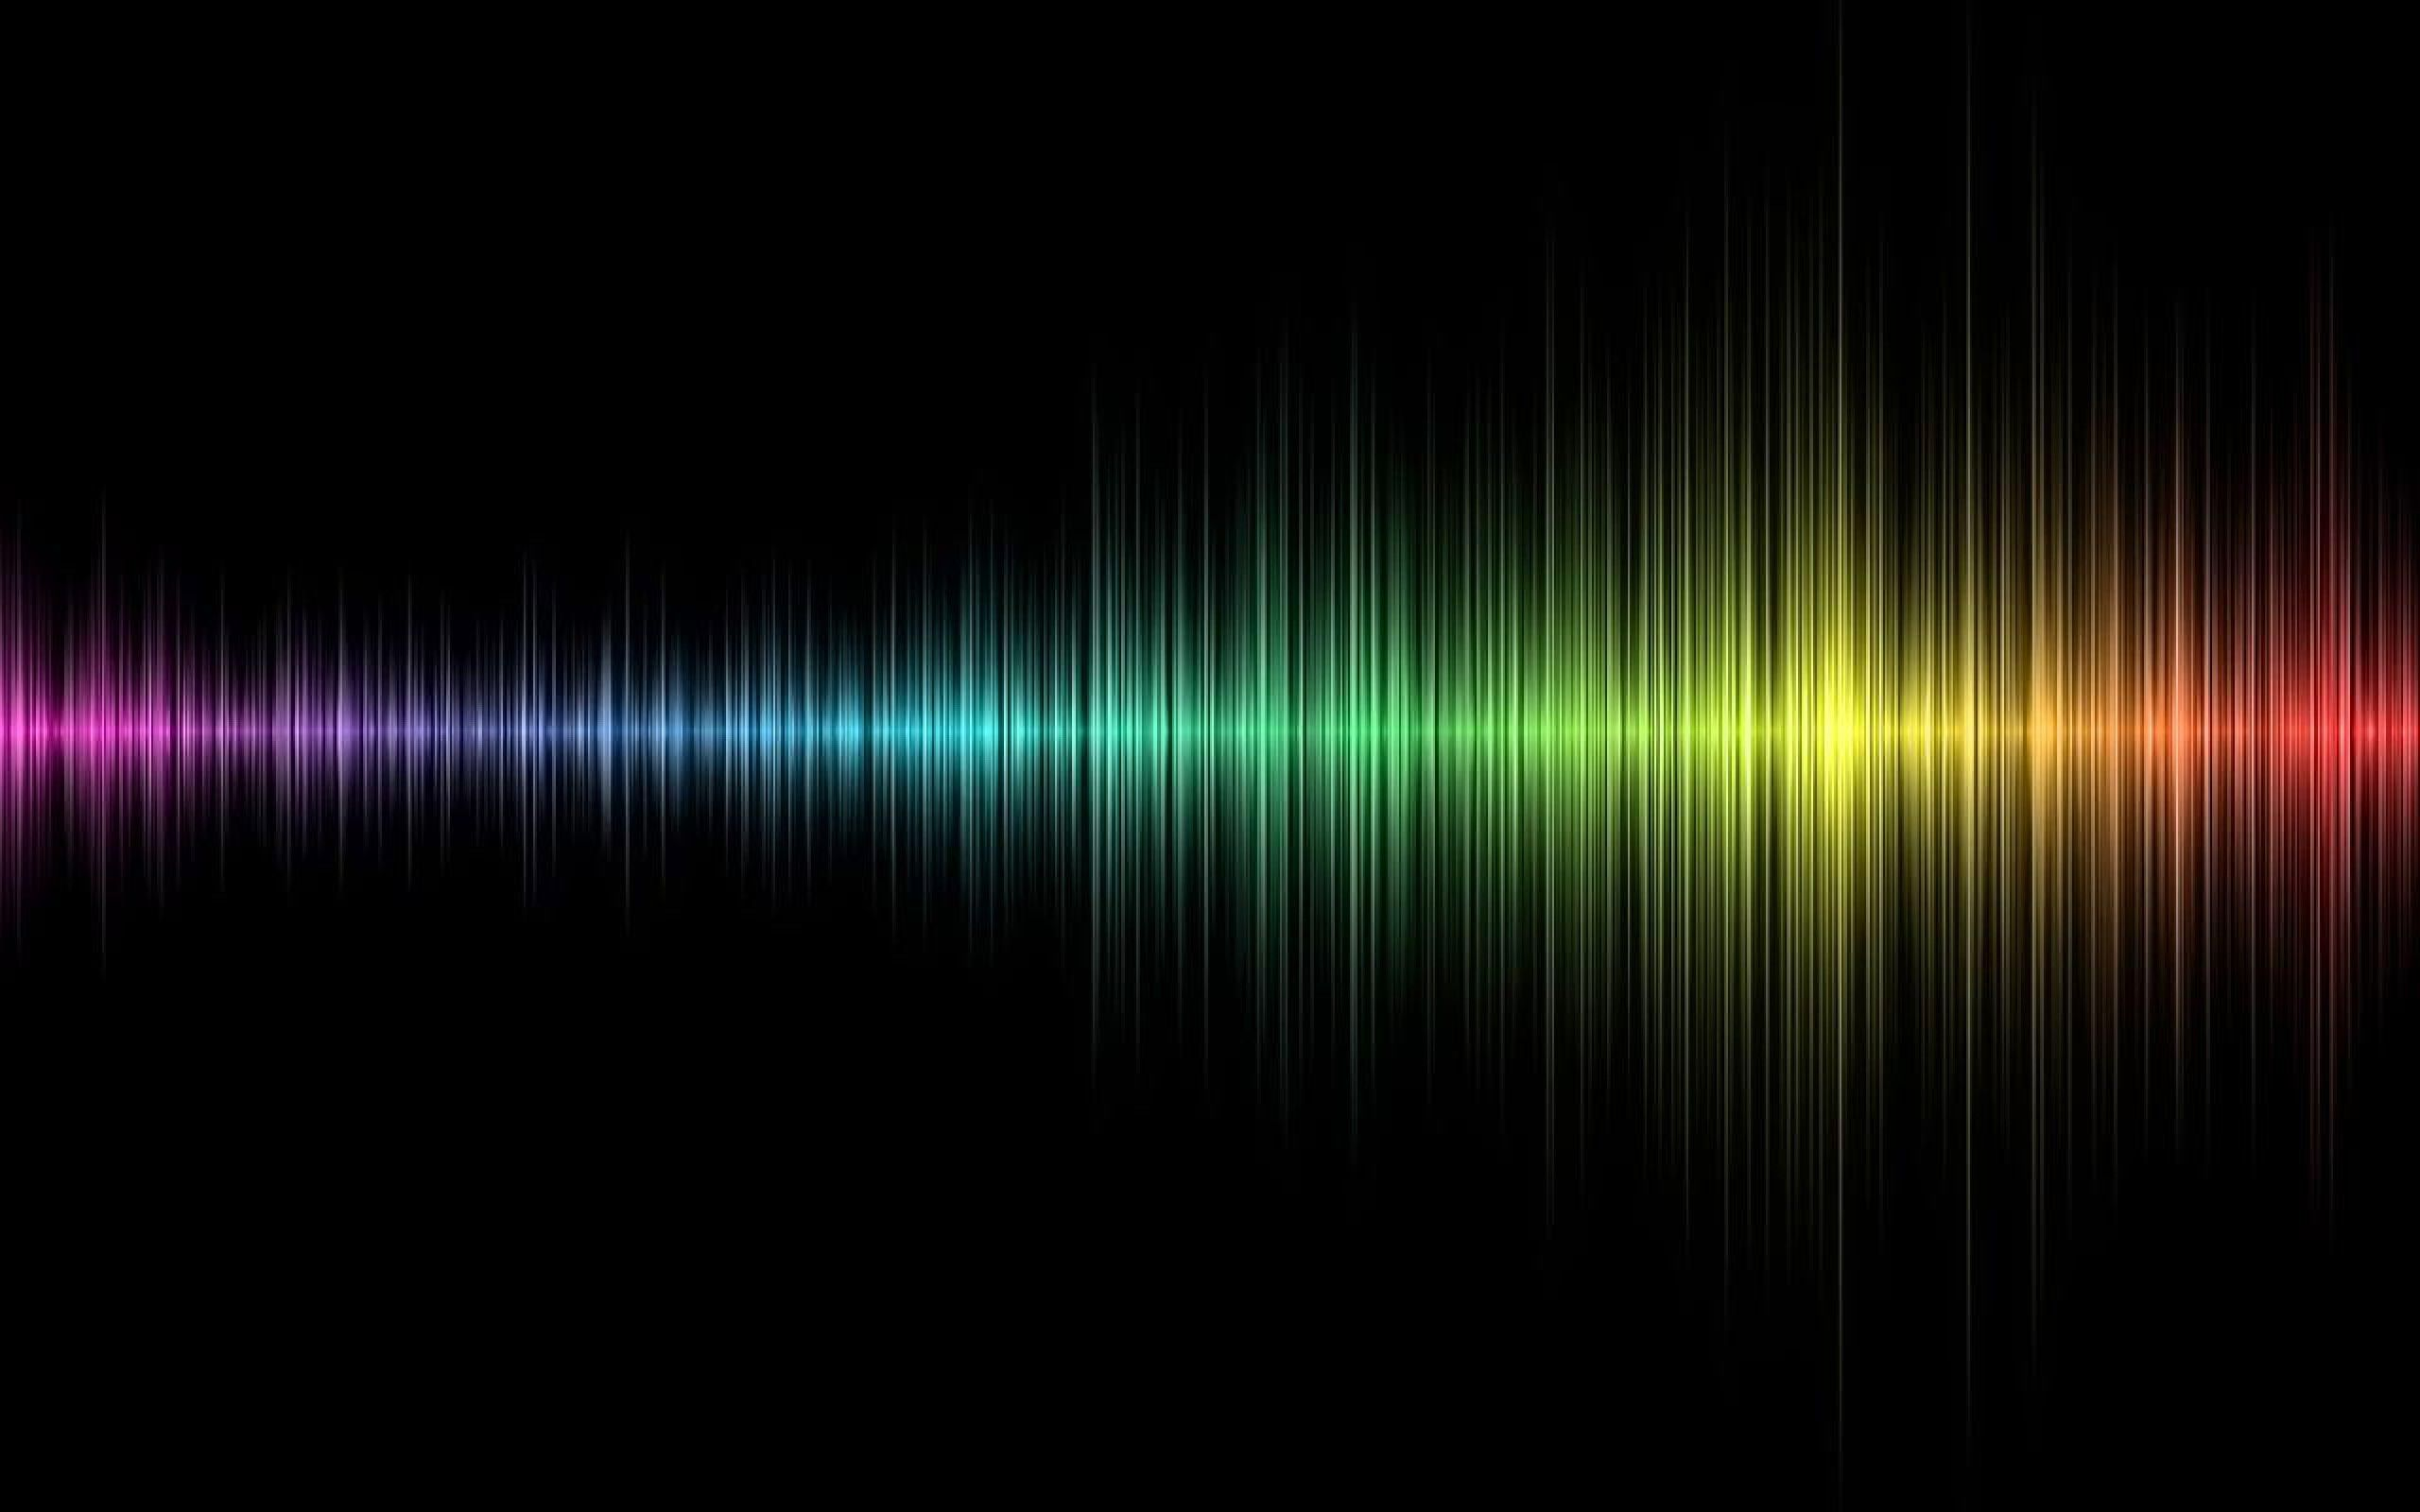 Must see Wallpaper Music Frequency - 5d758106170fd3c46f1bd9bf3fccf5ba  Graphic_467382.jpg